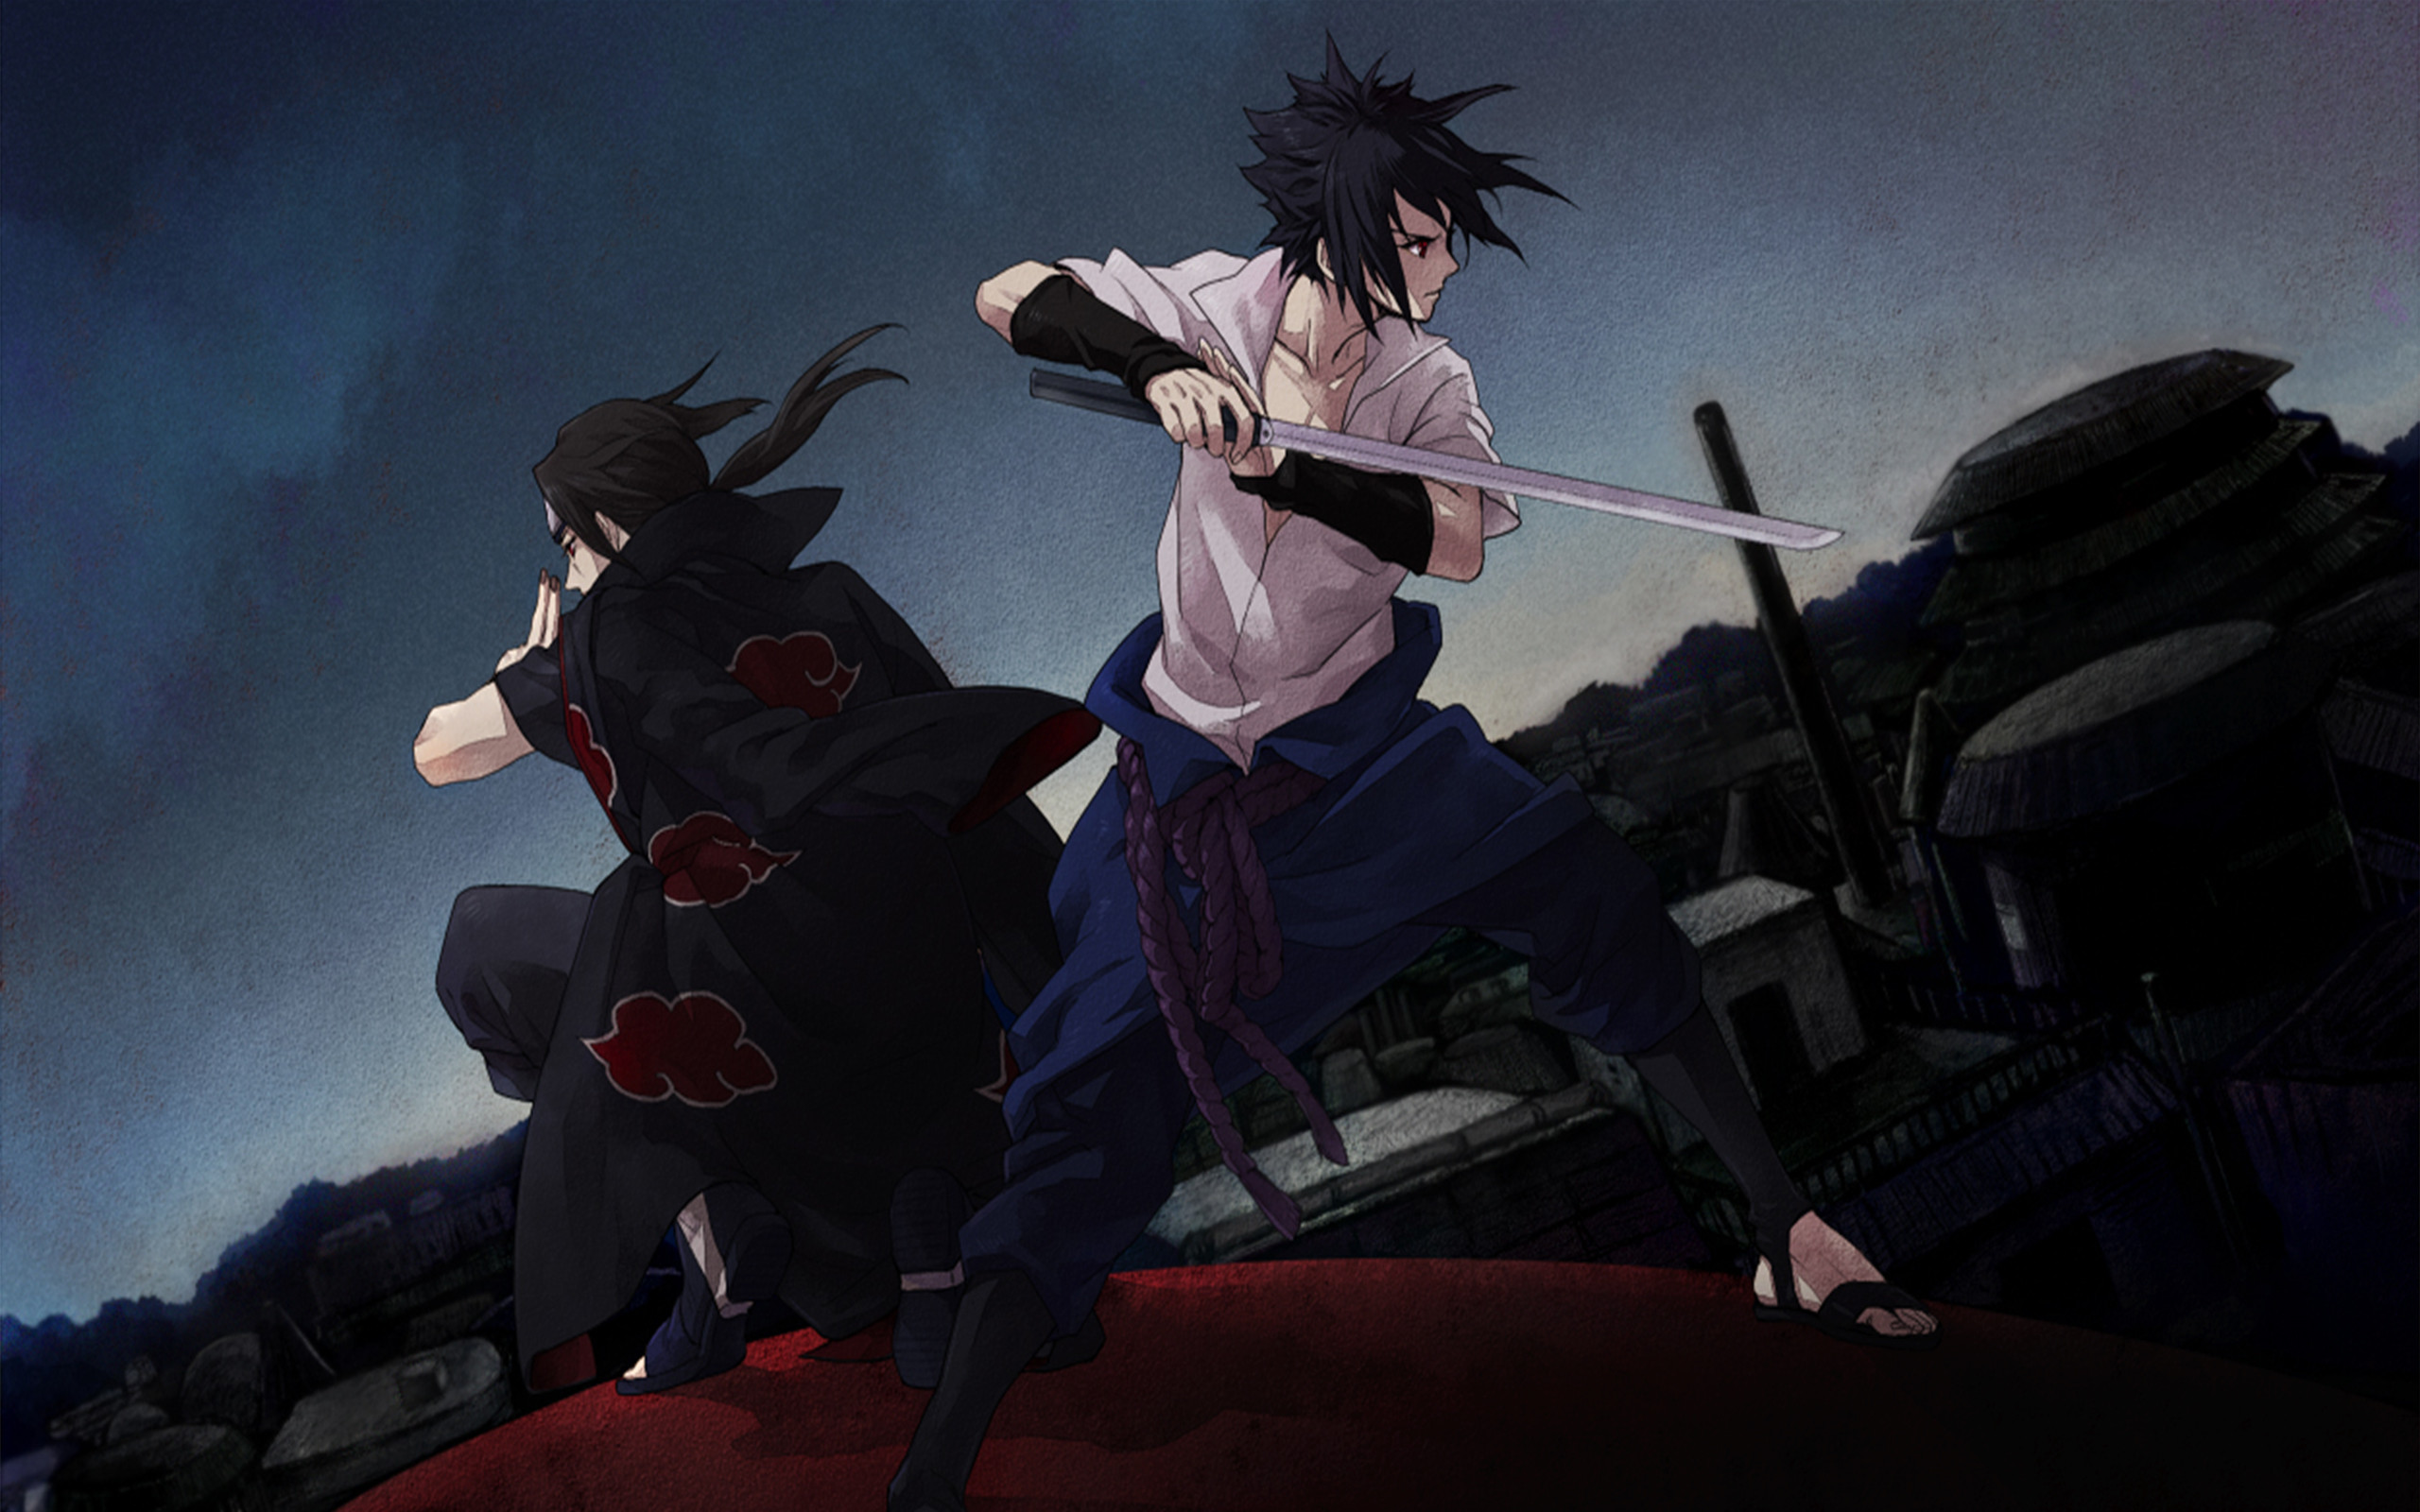 Res: 2560x1600, Uchiha Brothers · download Uchiha Brothers image